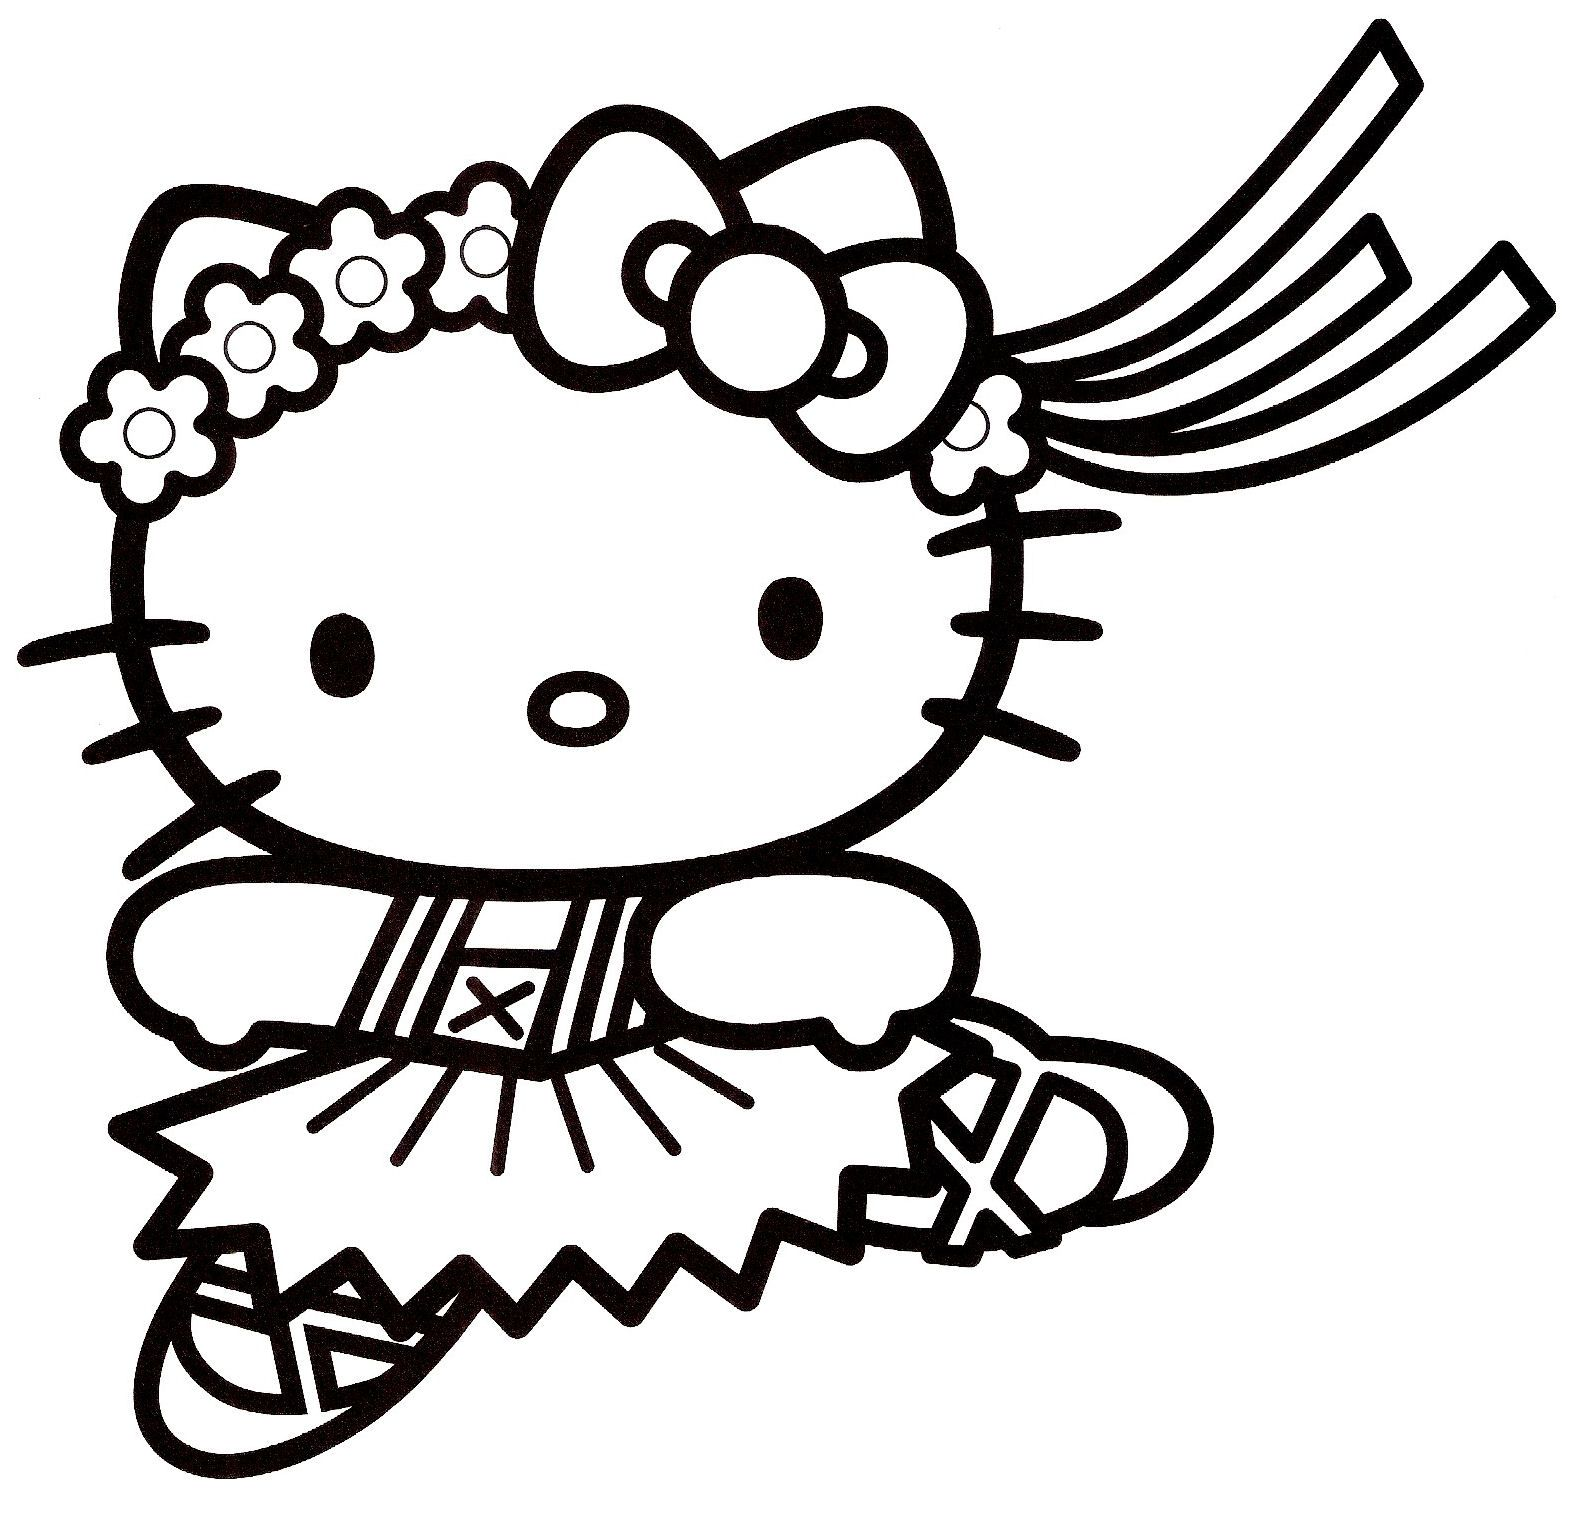 Coloriage hello kitty colorier dessin imprimer taylor pinterest hello kitty kitty - Coloriage tete hello kitty a imprimer ...